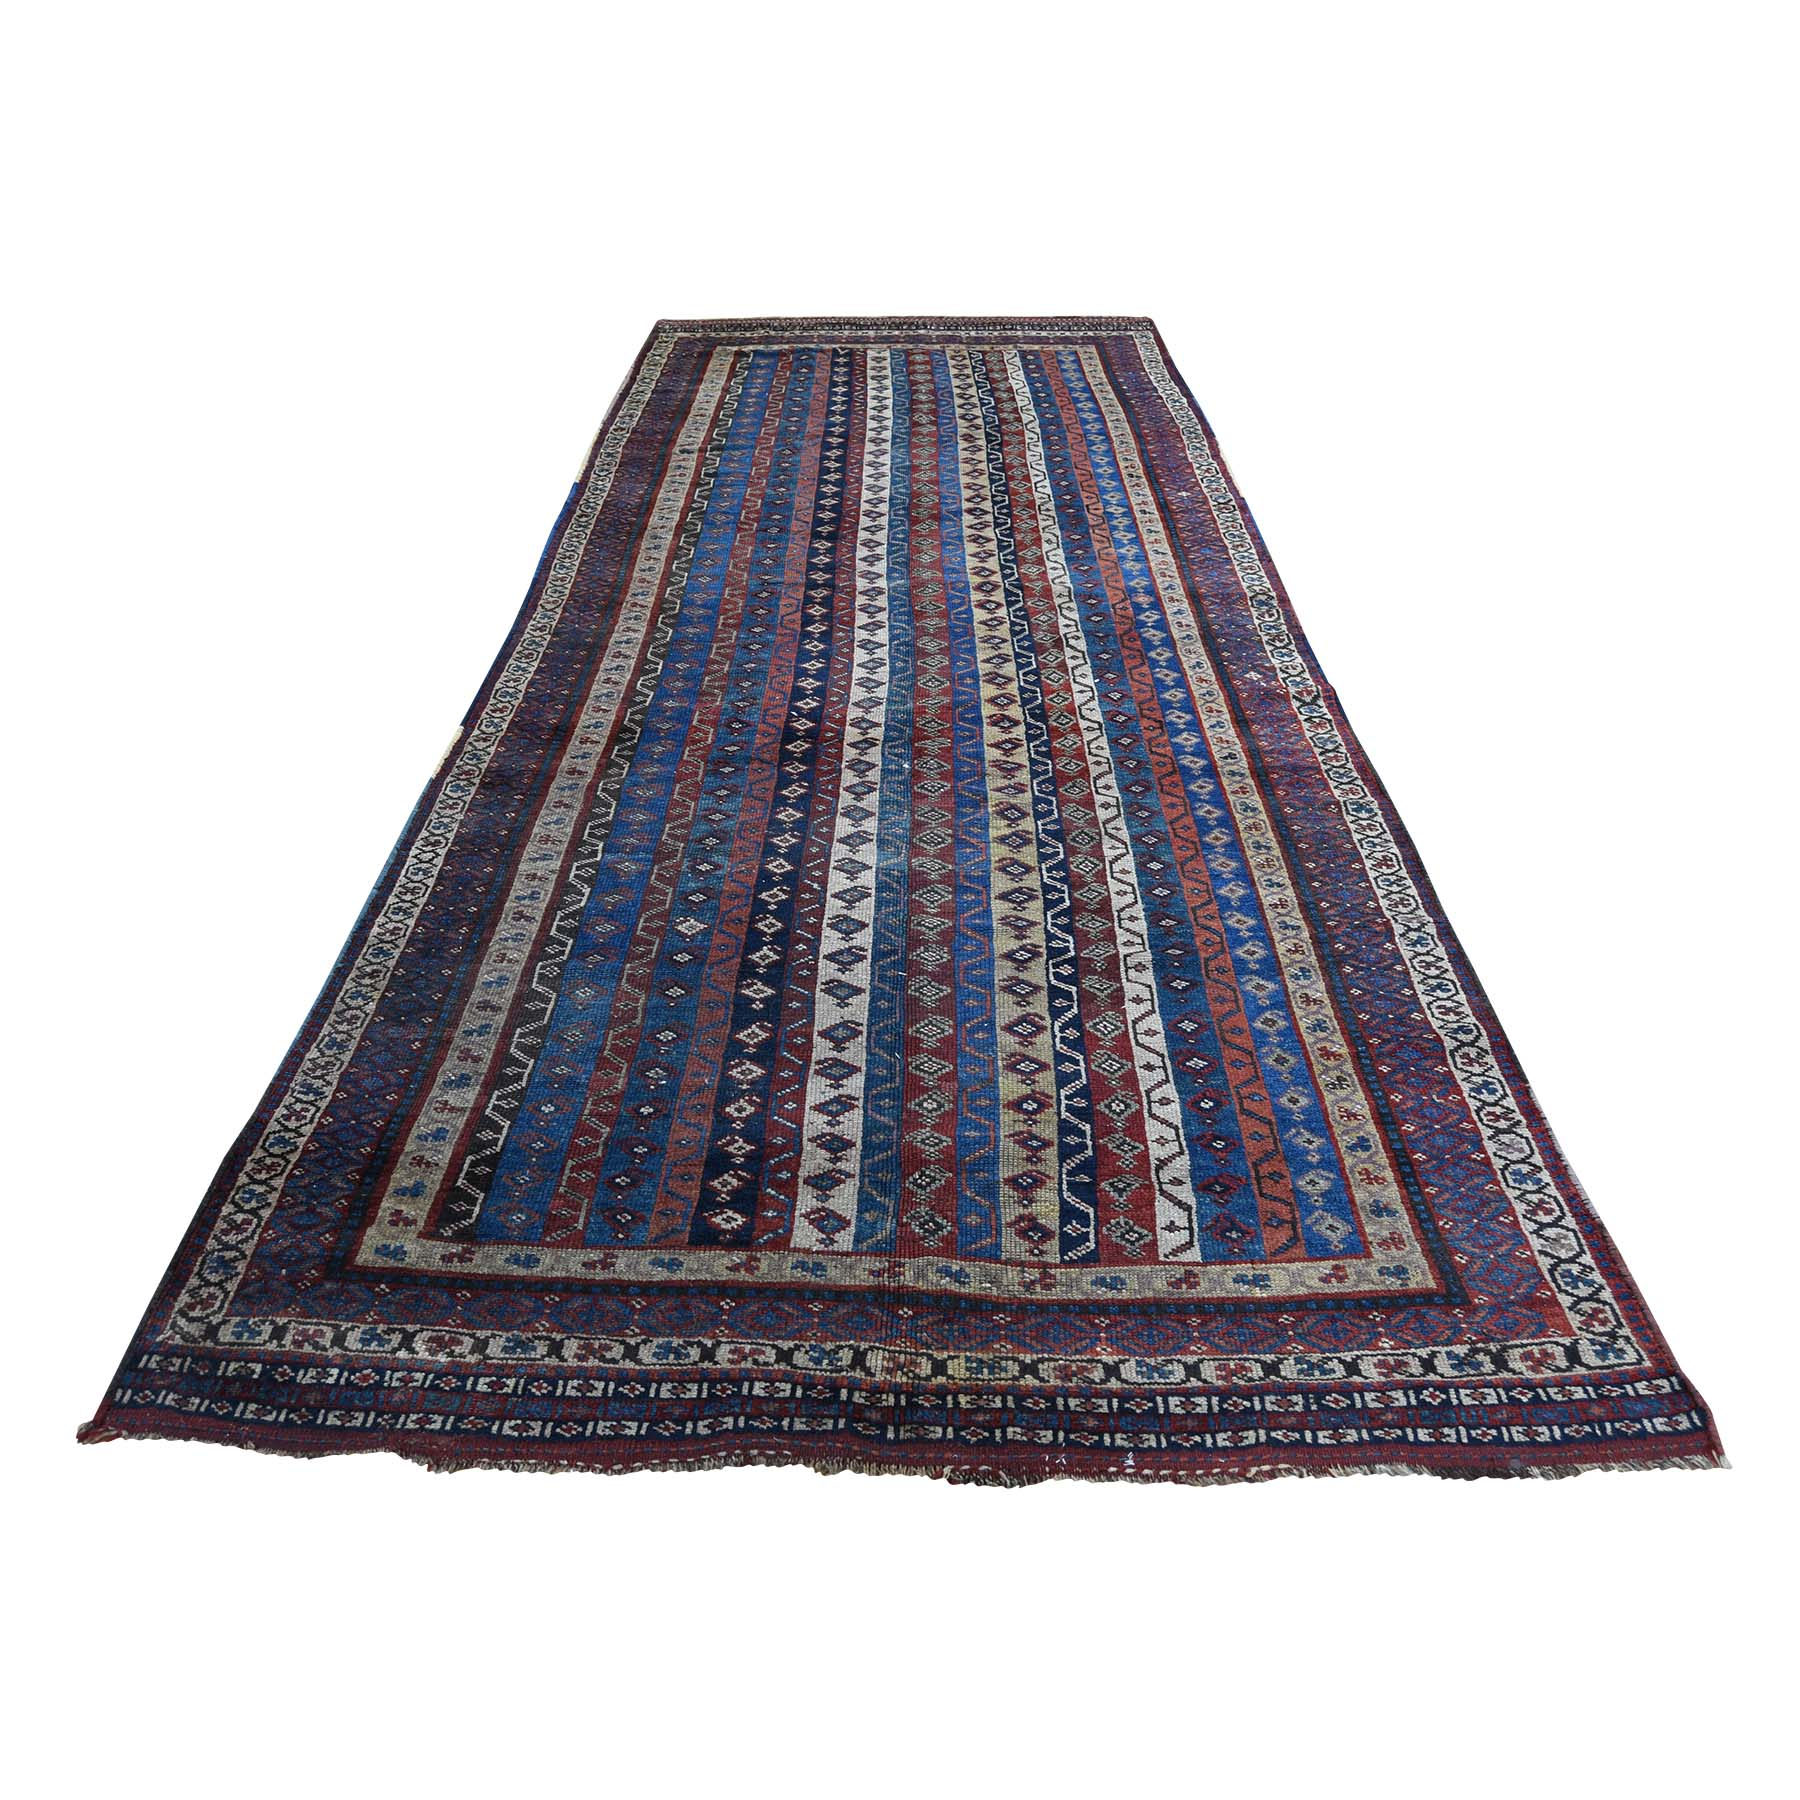 "4'10""X11'8"" Antique Persian Tribal Lori Buft With Shawl Design Wide Runner Hand-Knotted Oriental Rug moadcac8"